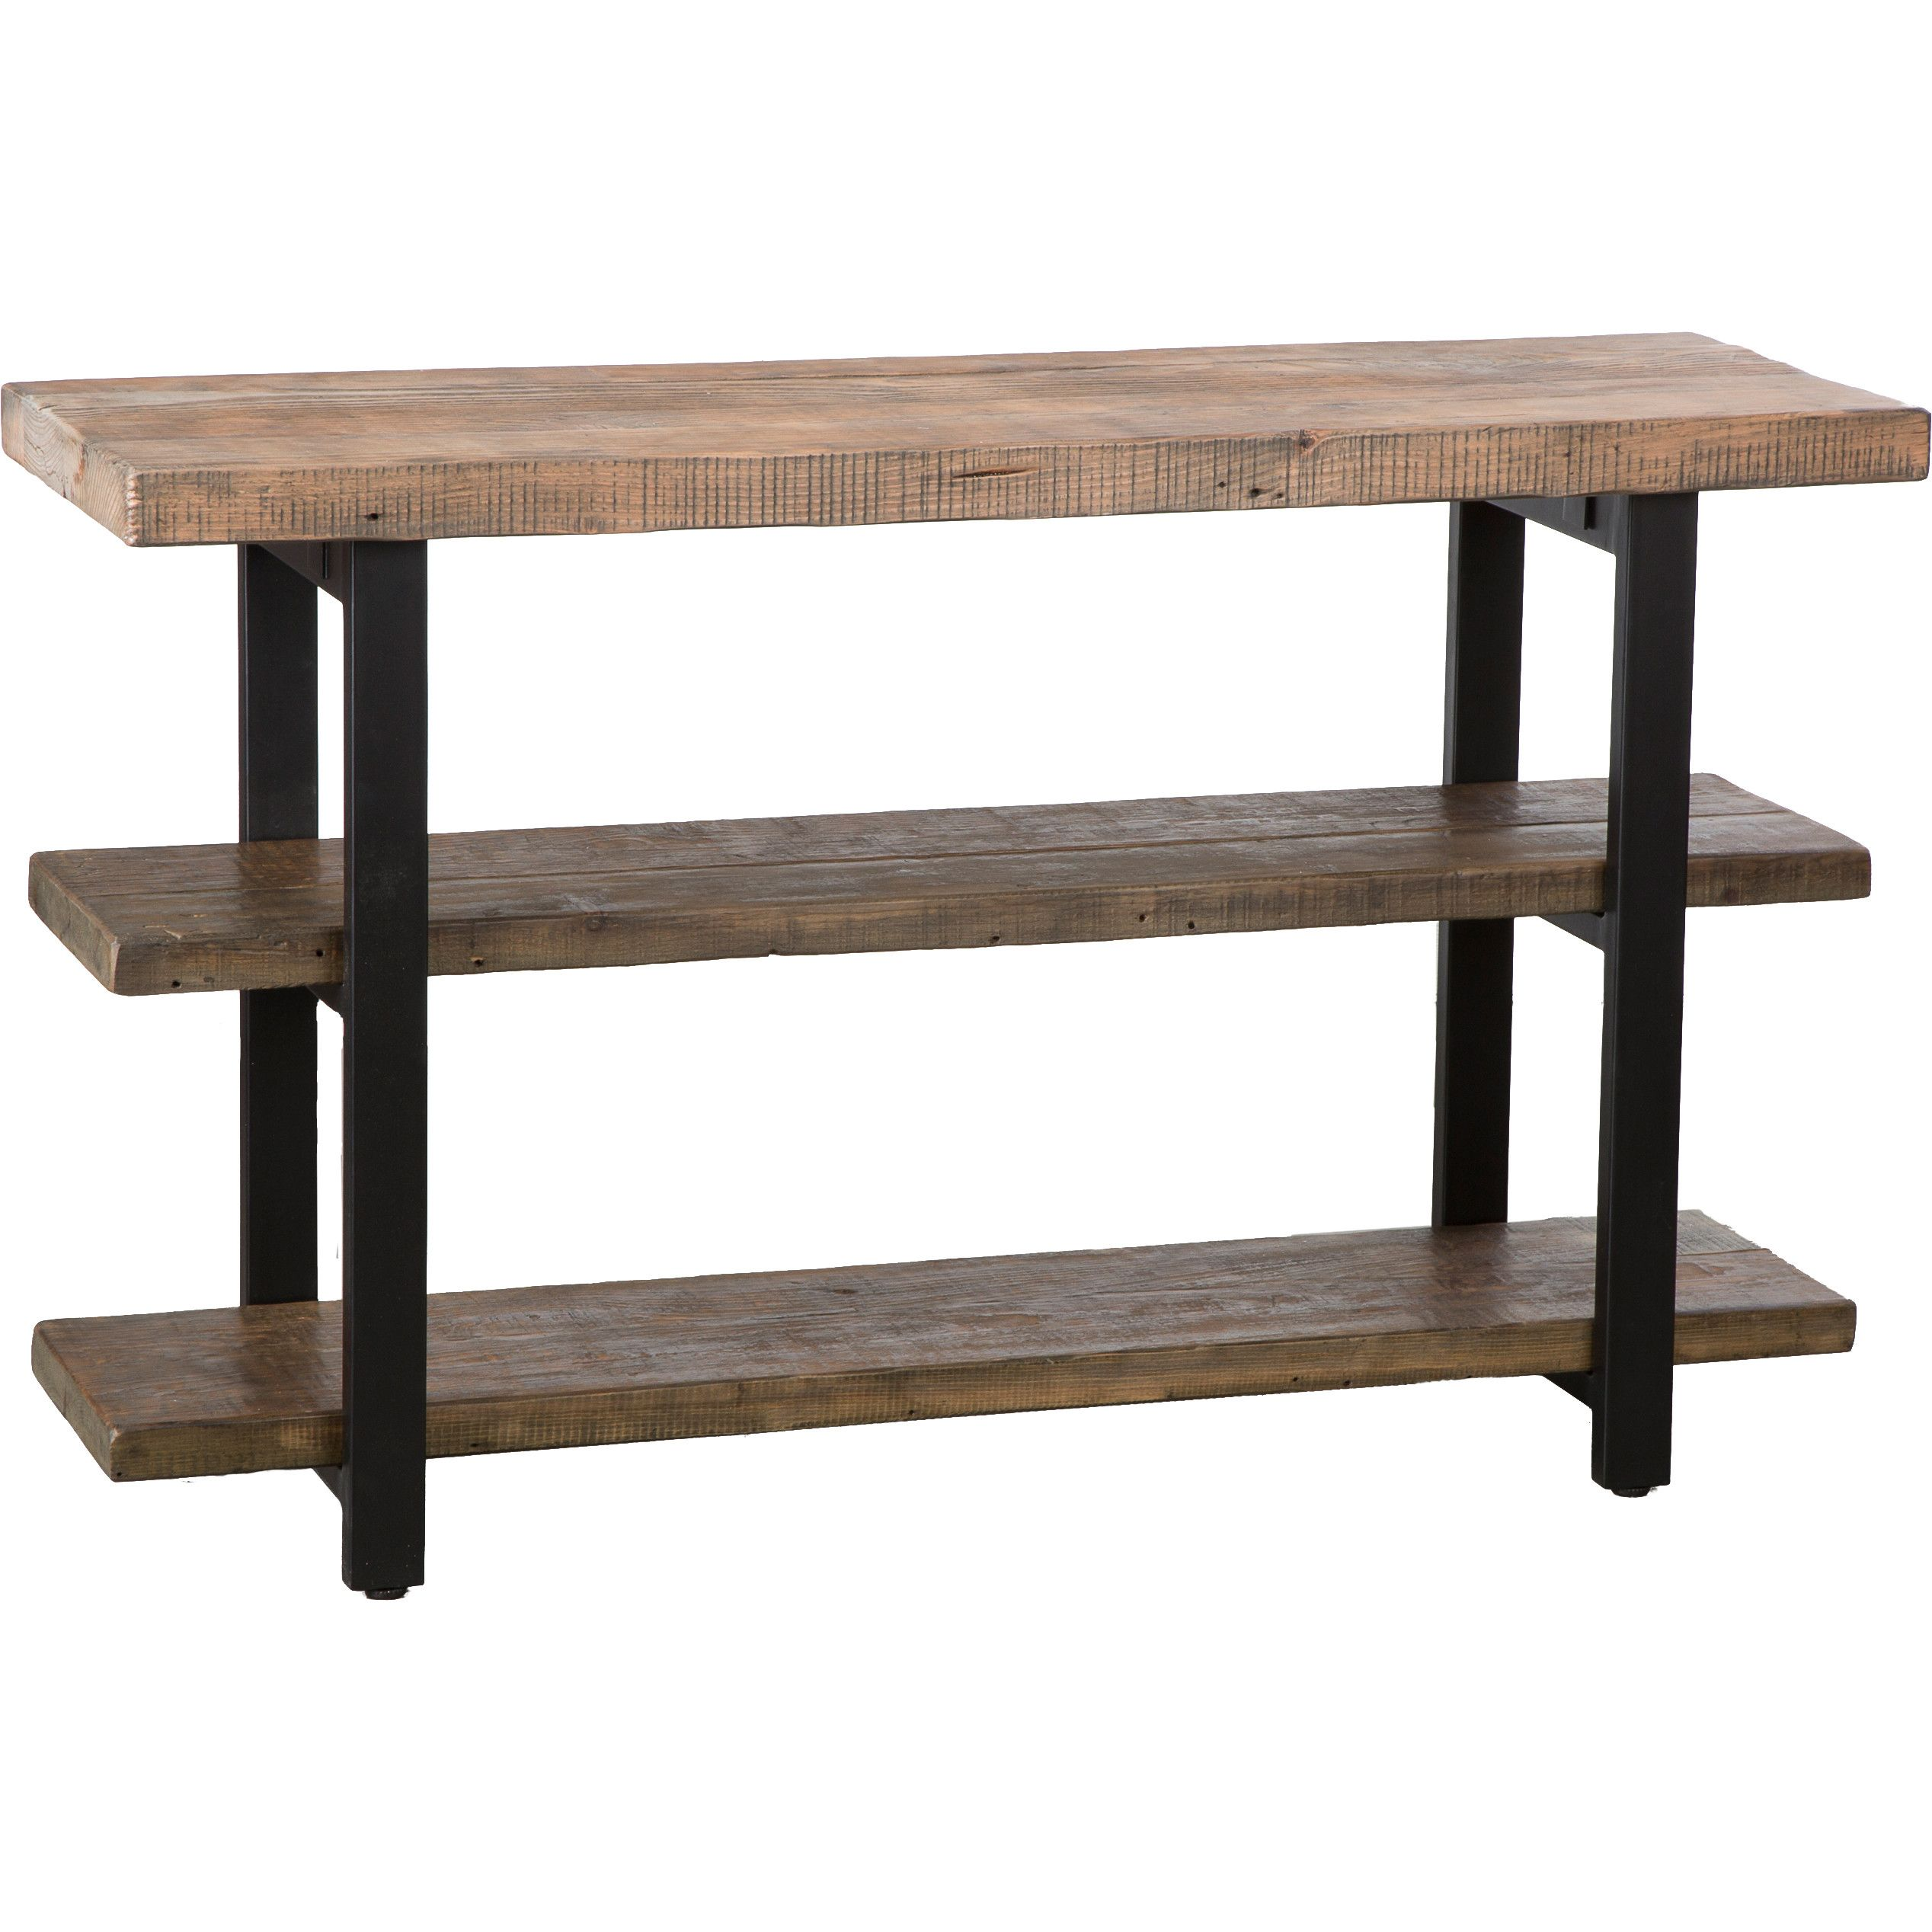 Loon Peak Somers Media Stand Console Table Rustic Console Tables Reclaimed Wood Console Table Rustic Consoles [ 2536 x 2536 Pixel ]